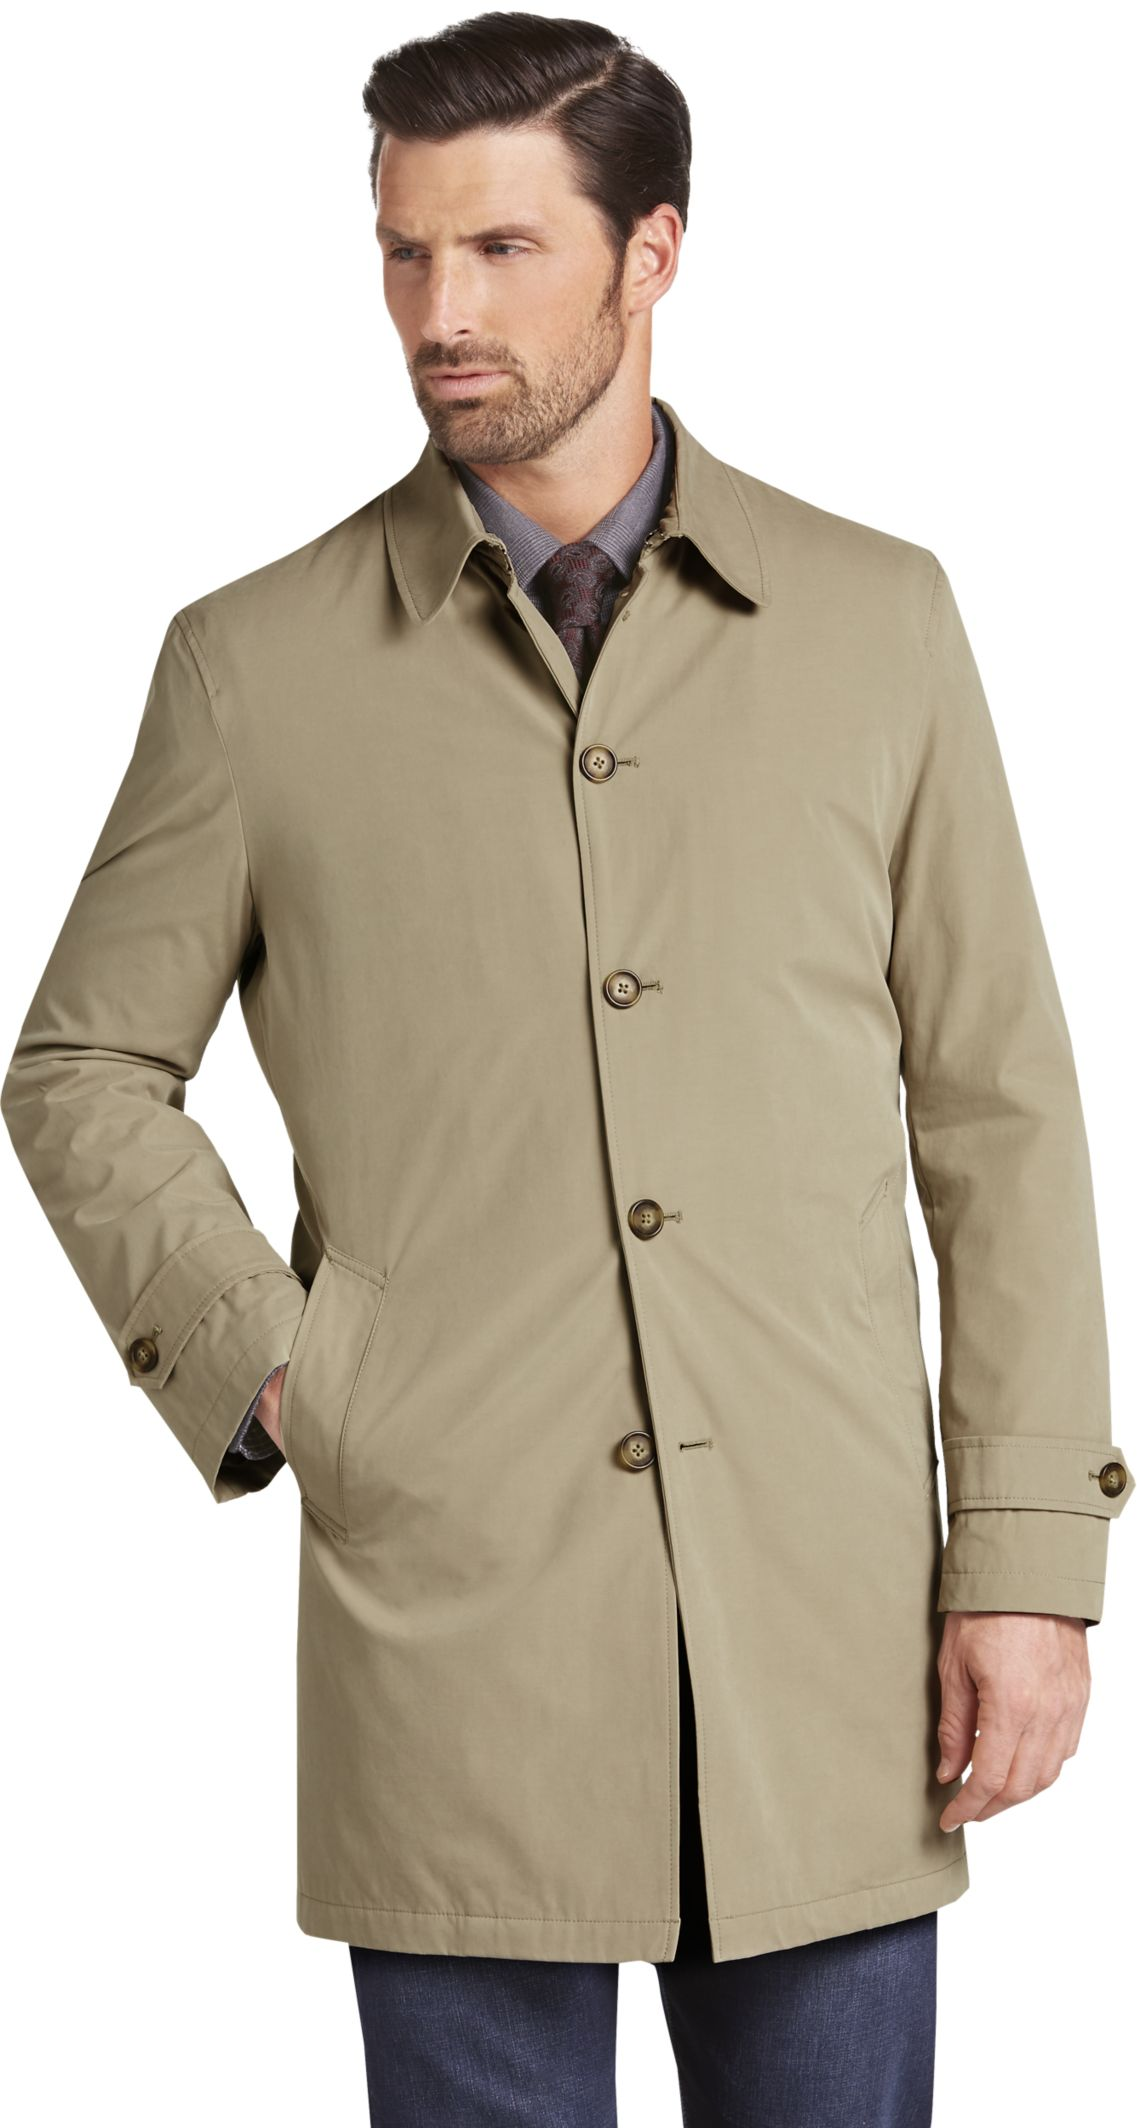 Raincoats for men: Need of This monsoon